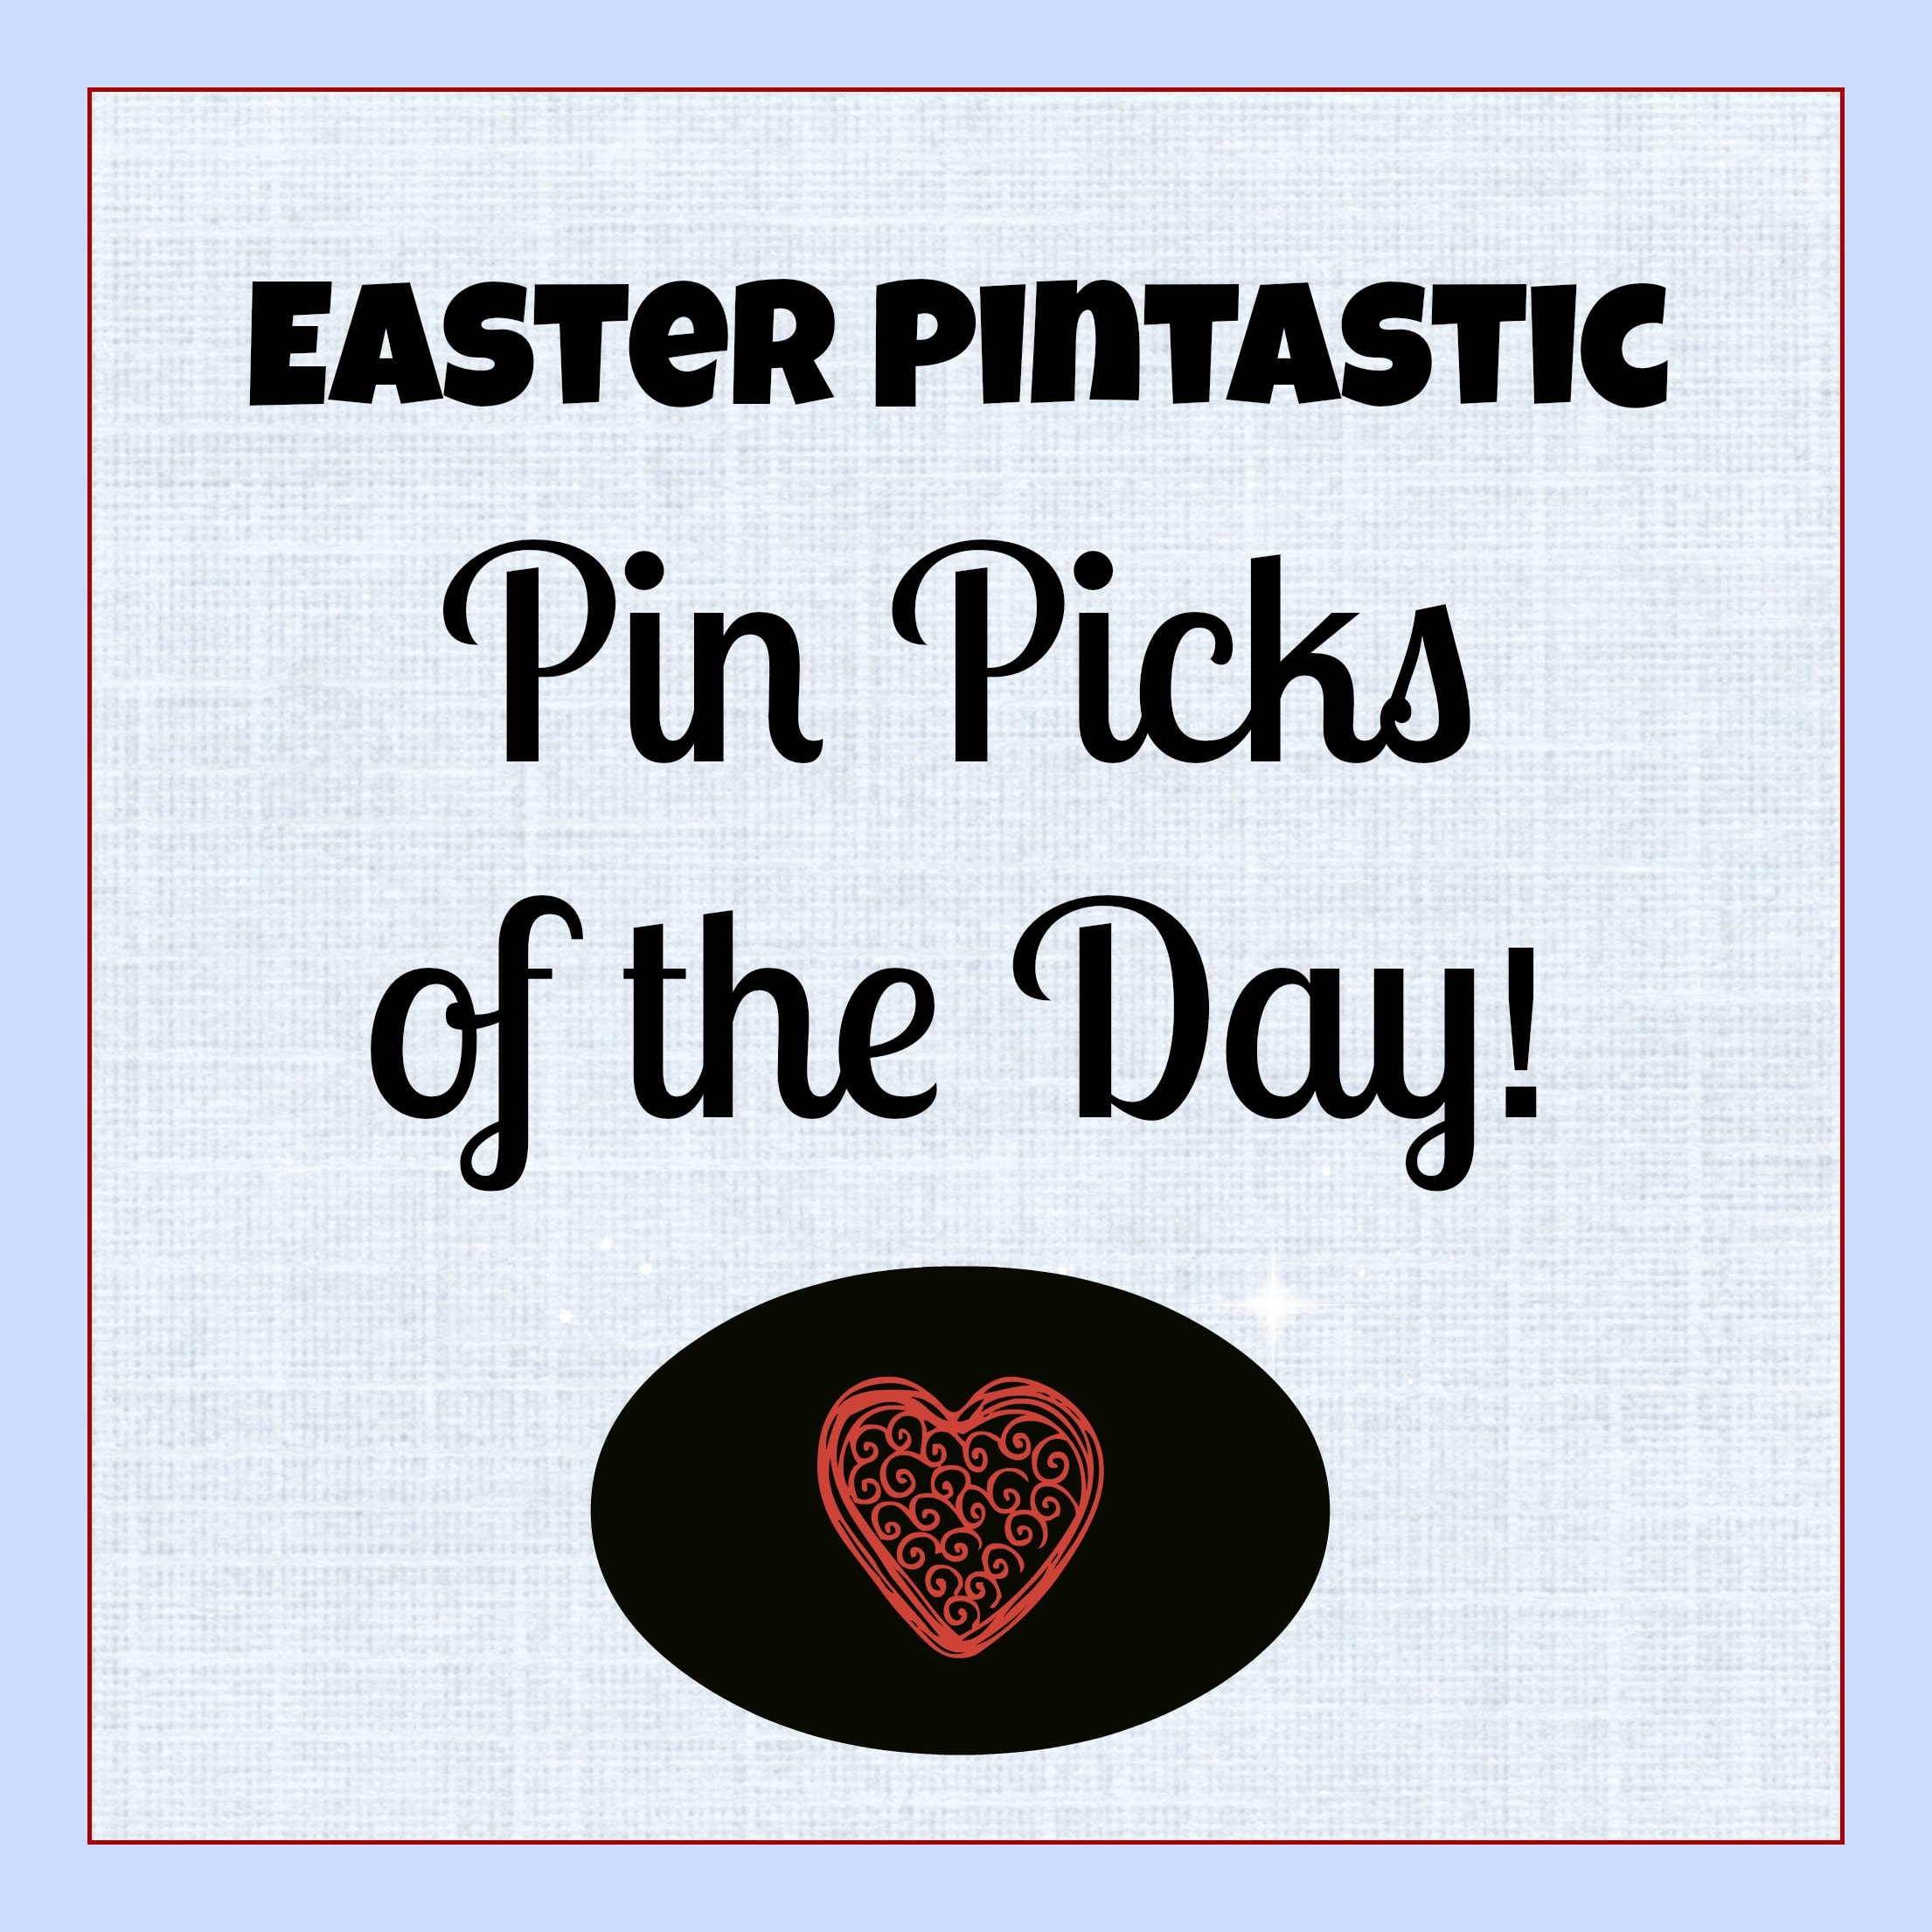 Easter Ideas That Are Pintastic!